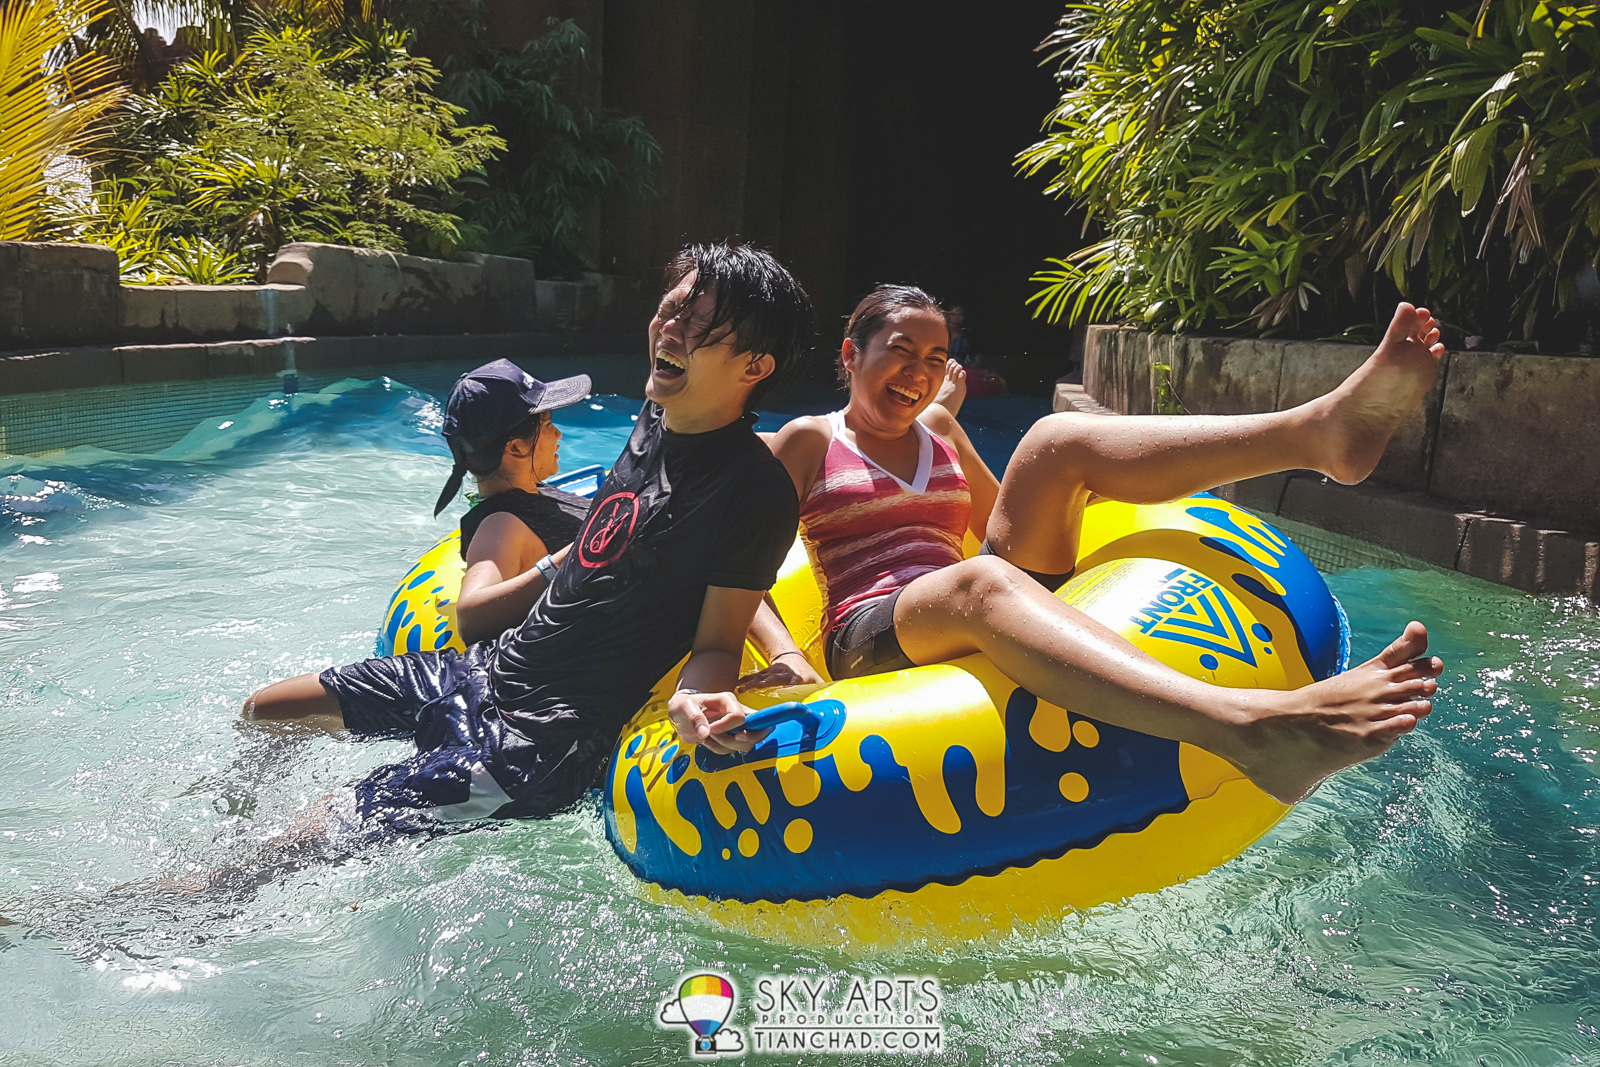 Lost world of tambun must try ride tctravel that fun moment when adventure river hit by huge waves at lost world of tambun gumiabroncs Choice Image